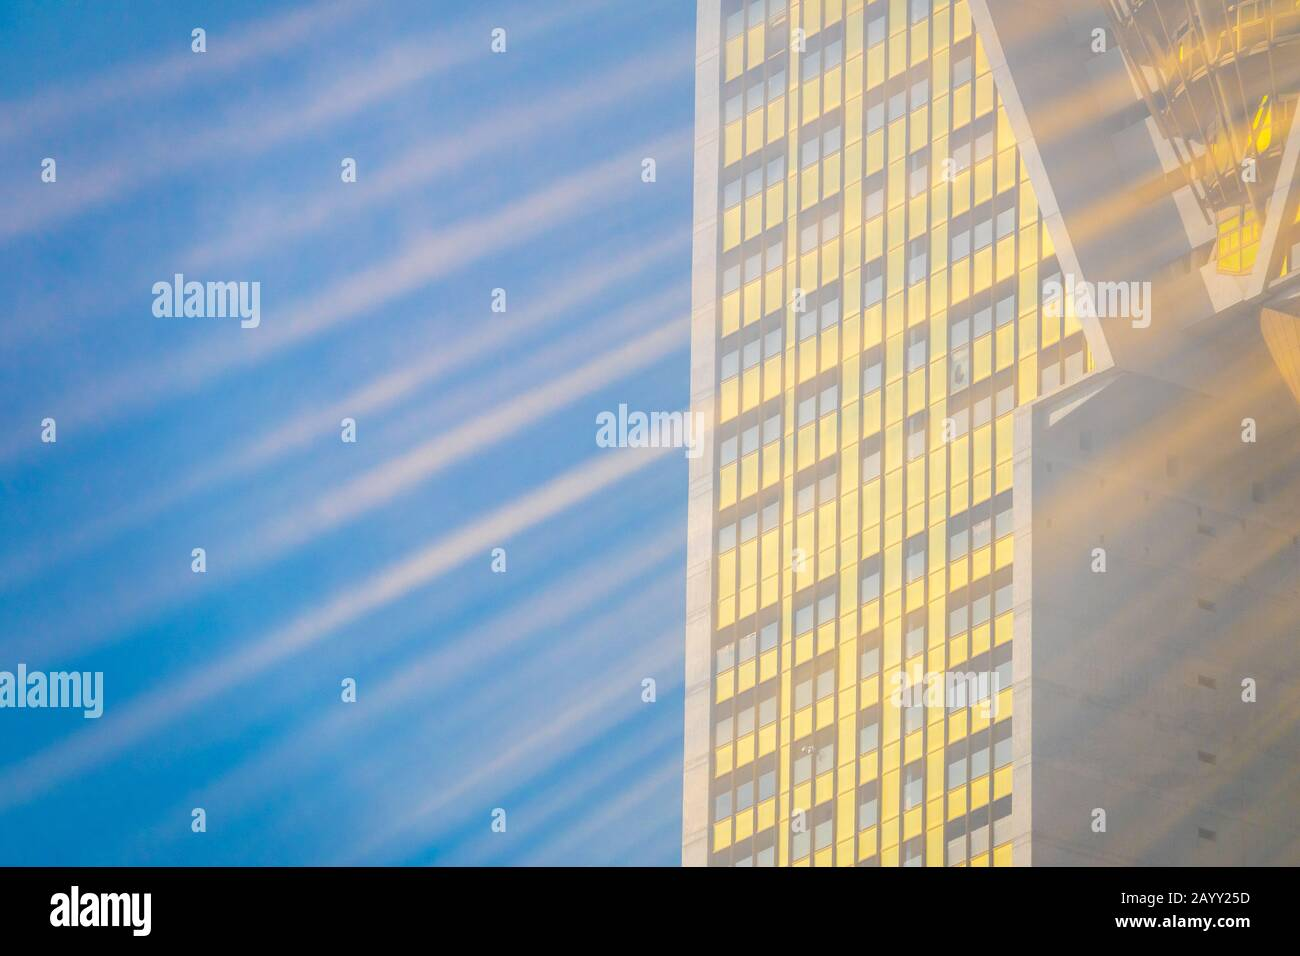 intempo-high-rise-residential-property-sun-rays-reflecting-off-golden-glazed-tower-block-through-mist-noise-in-image-due-to-mist-2AYY25D.jpg